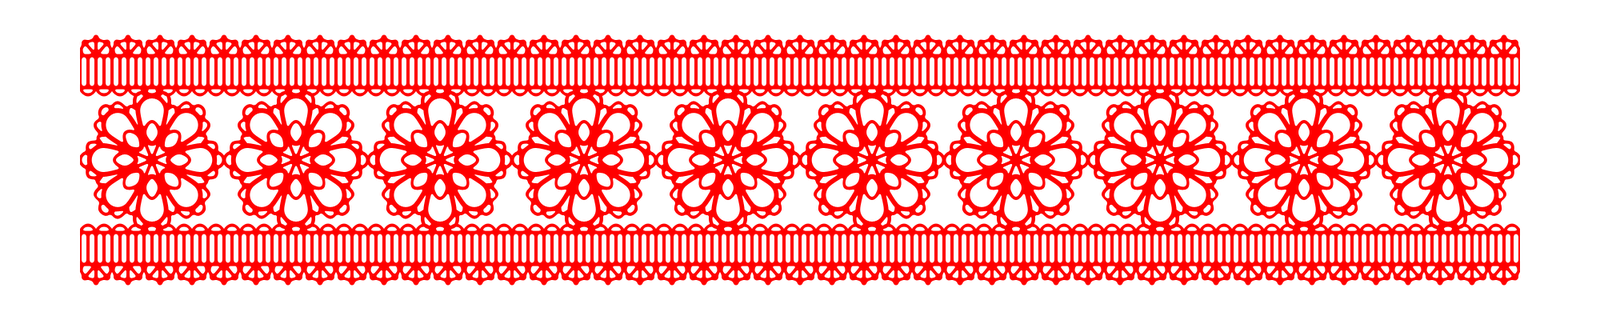 lace clipart lace fabric